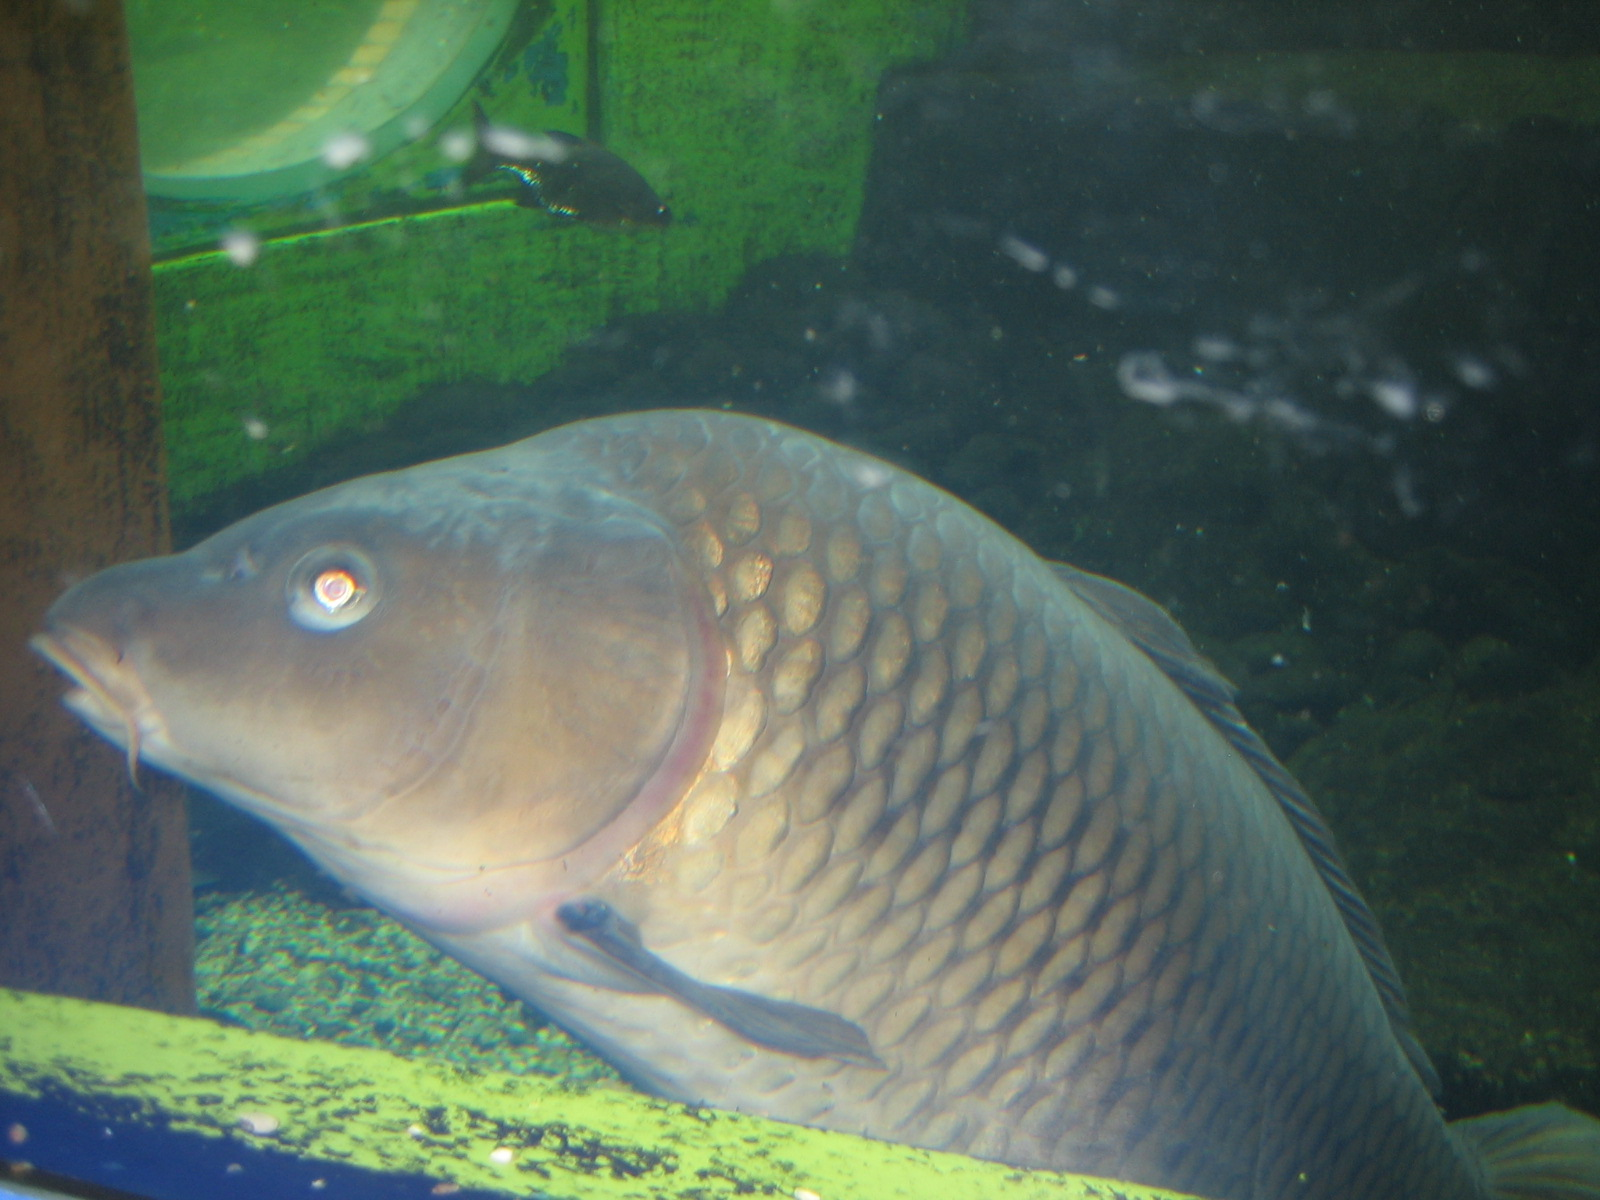 Image of carp after eating particles